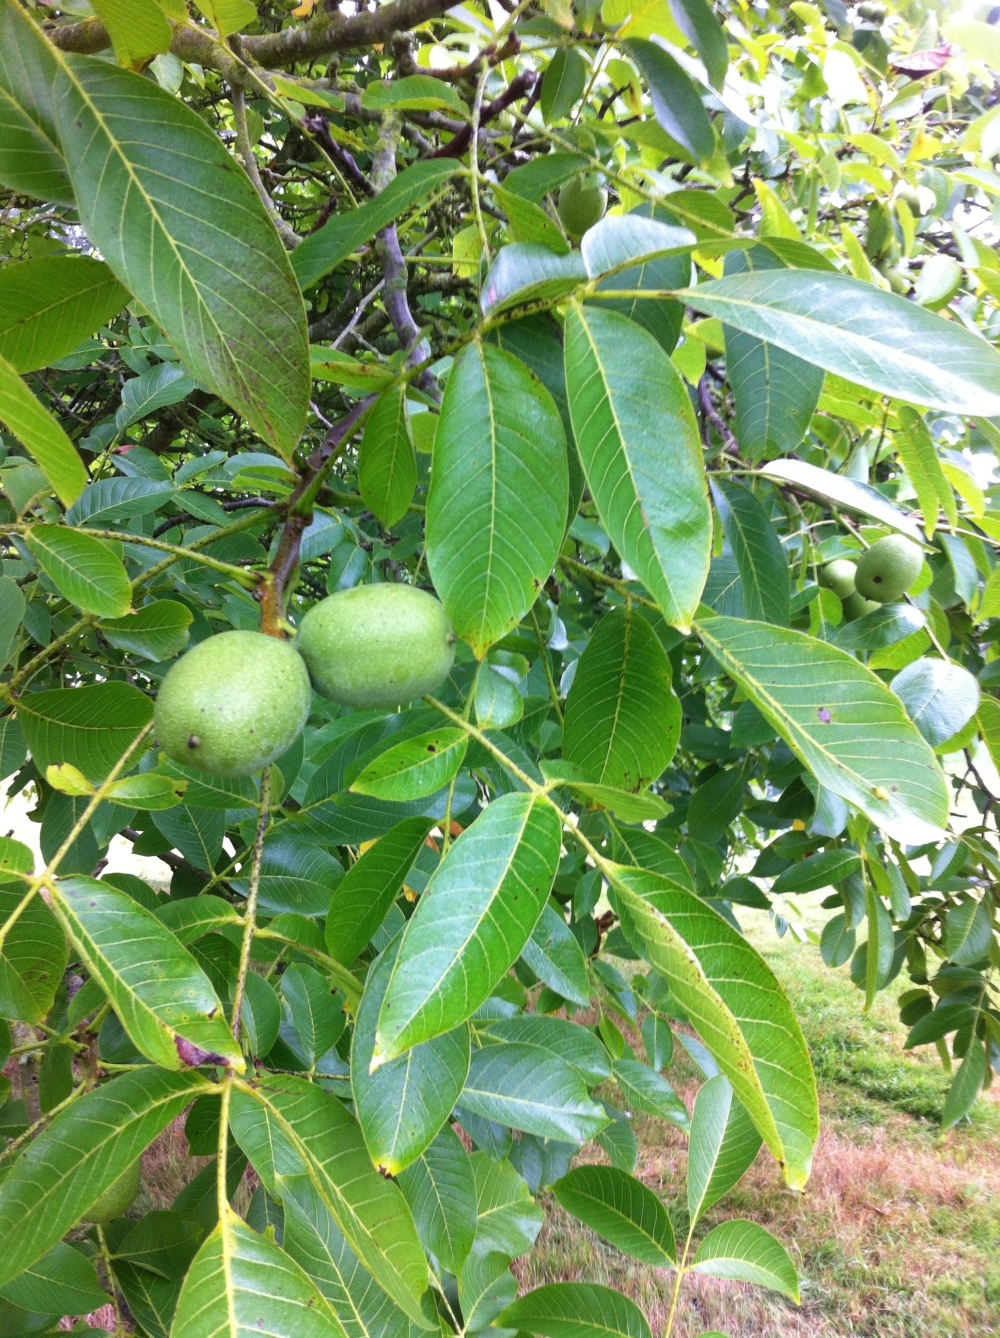 Once a Walnut tree reaches maturity you can expect a heavy crop every year.